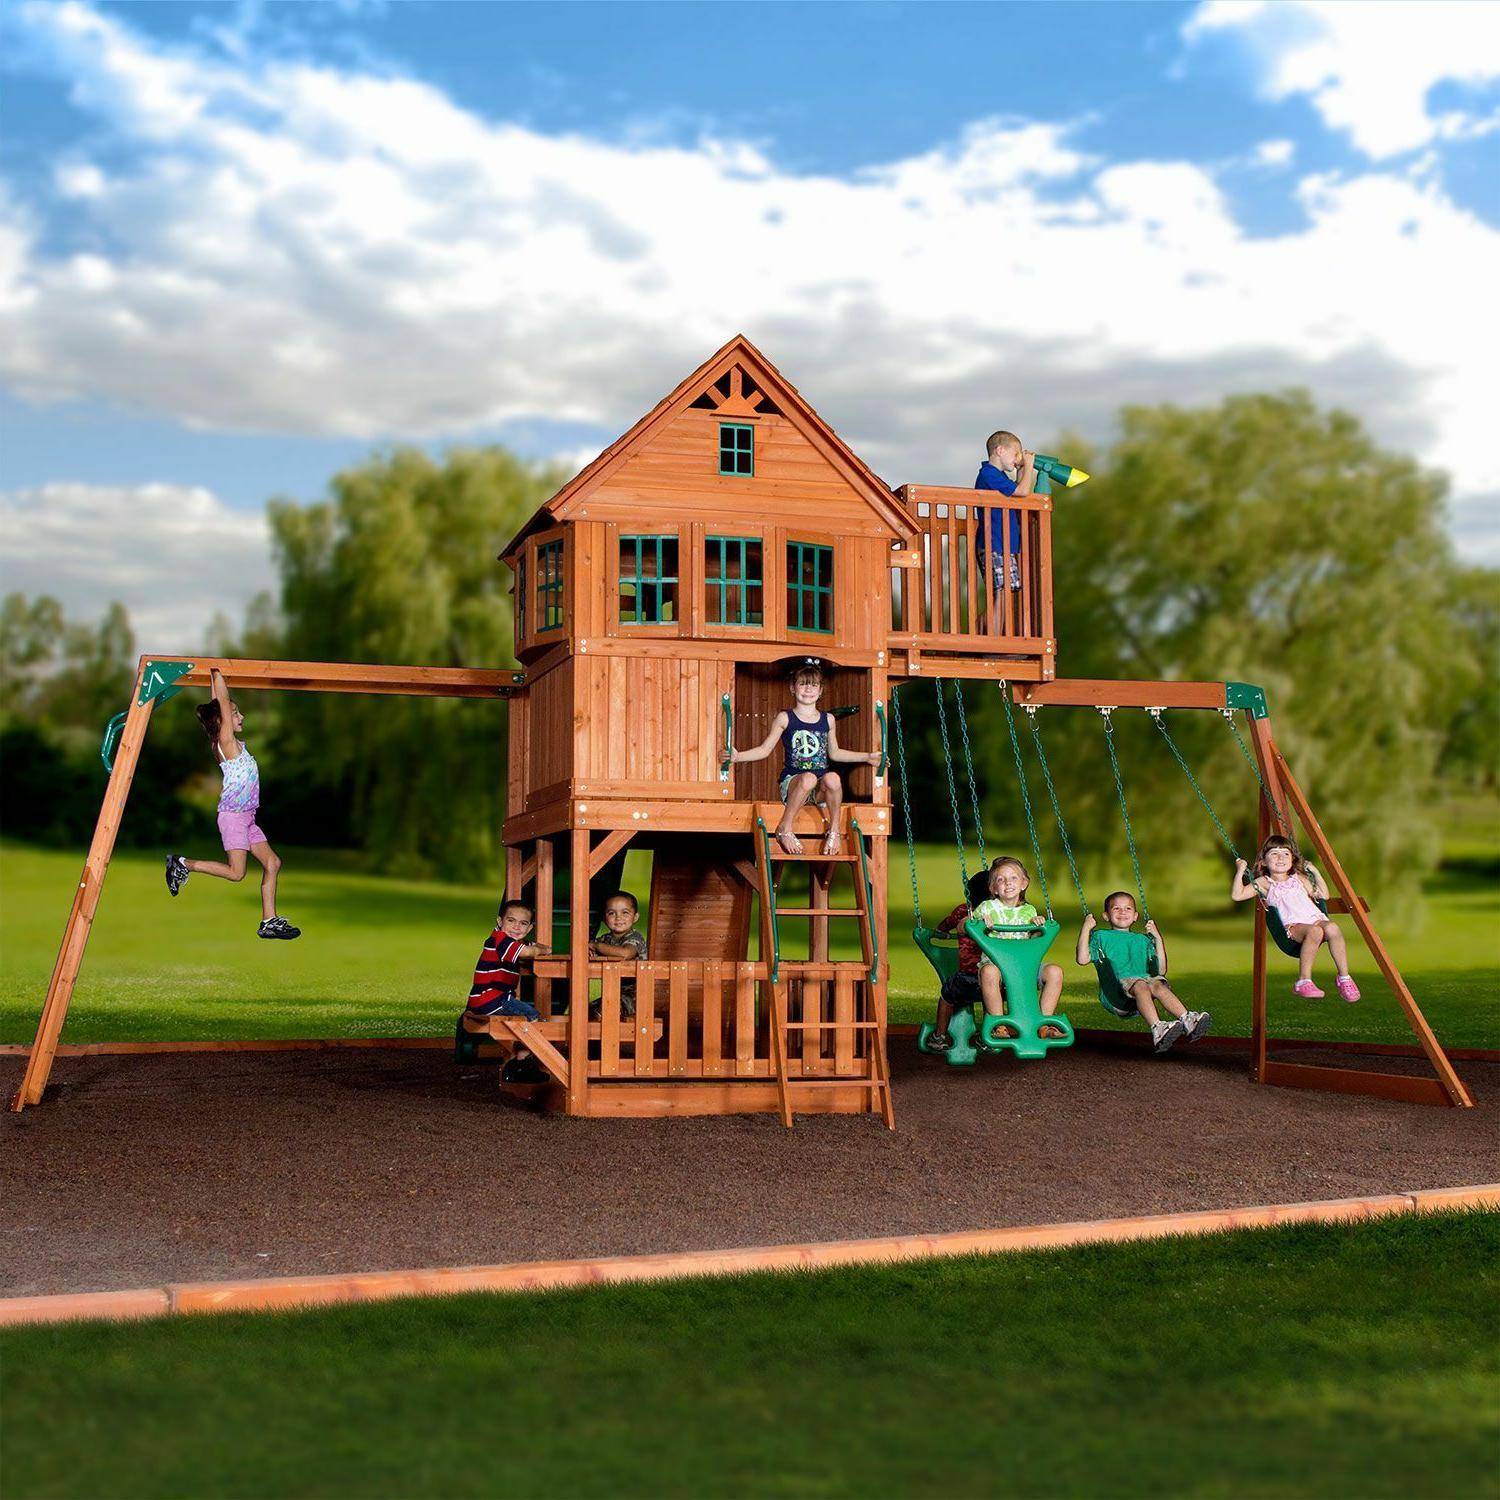 Backyard Cedar Swing Set/Play Do